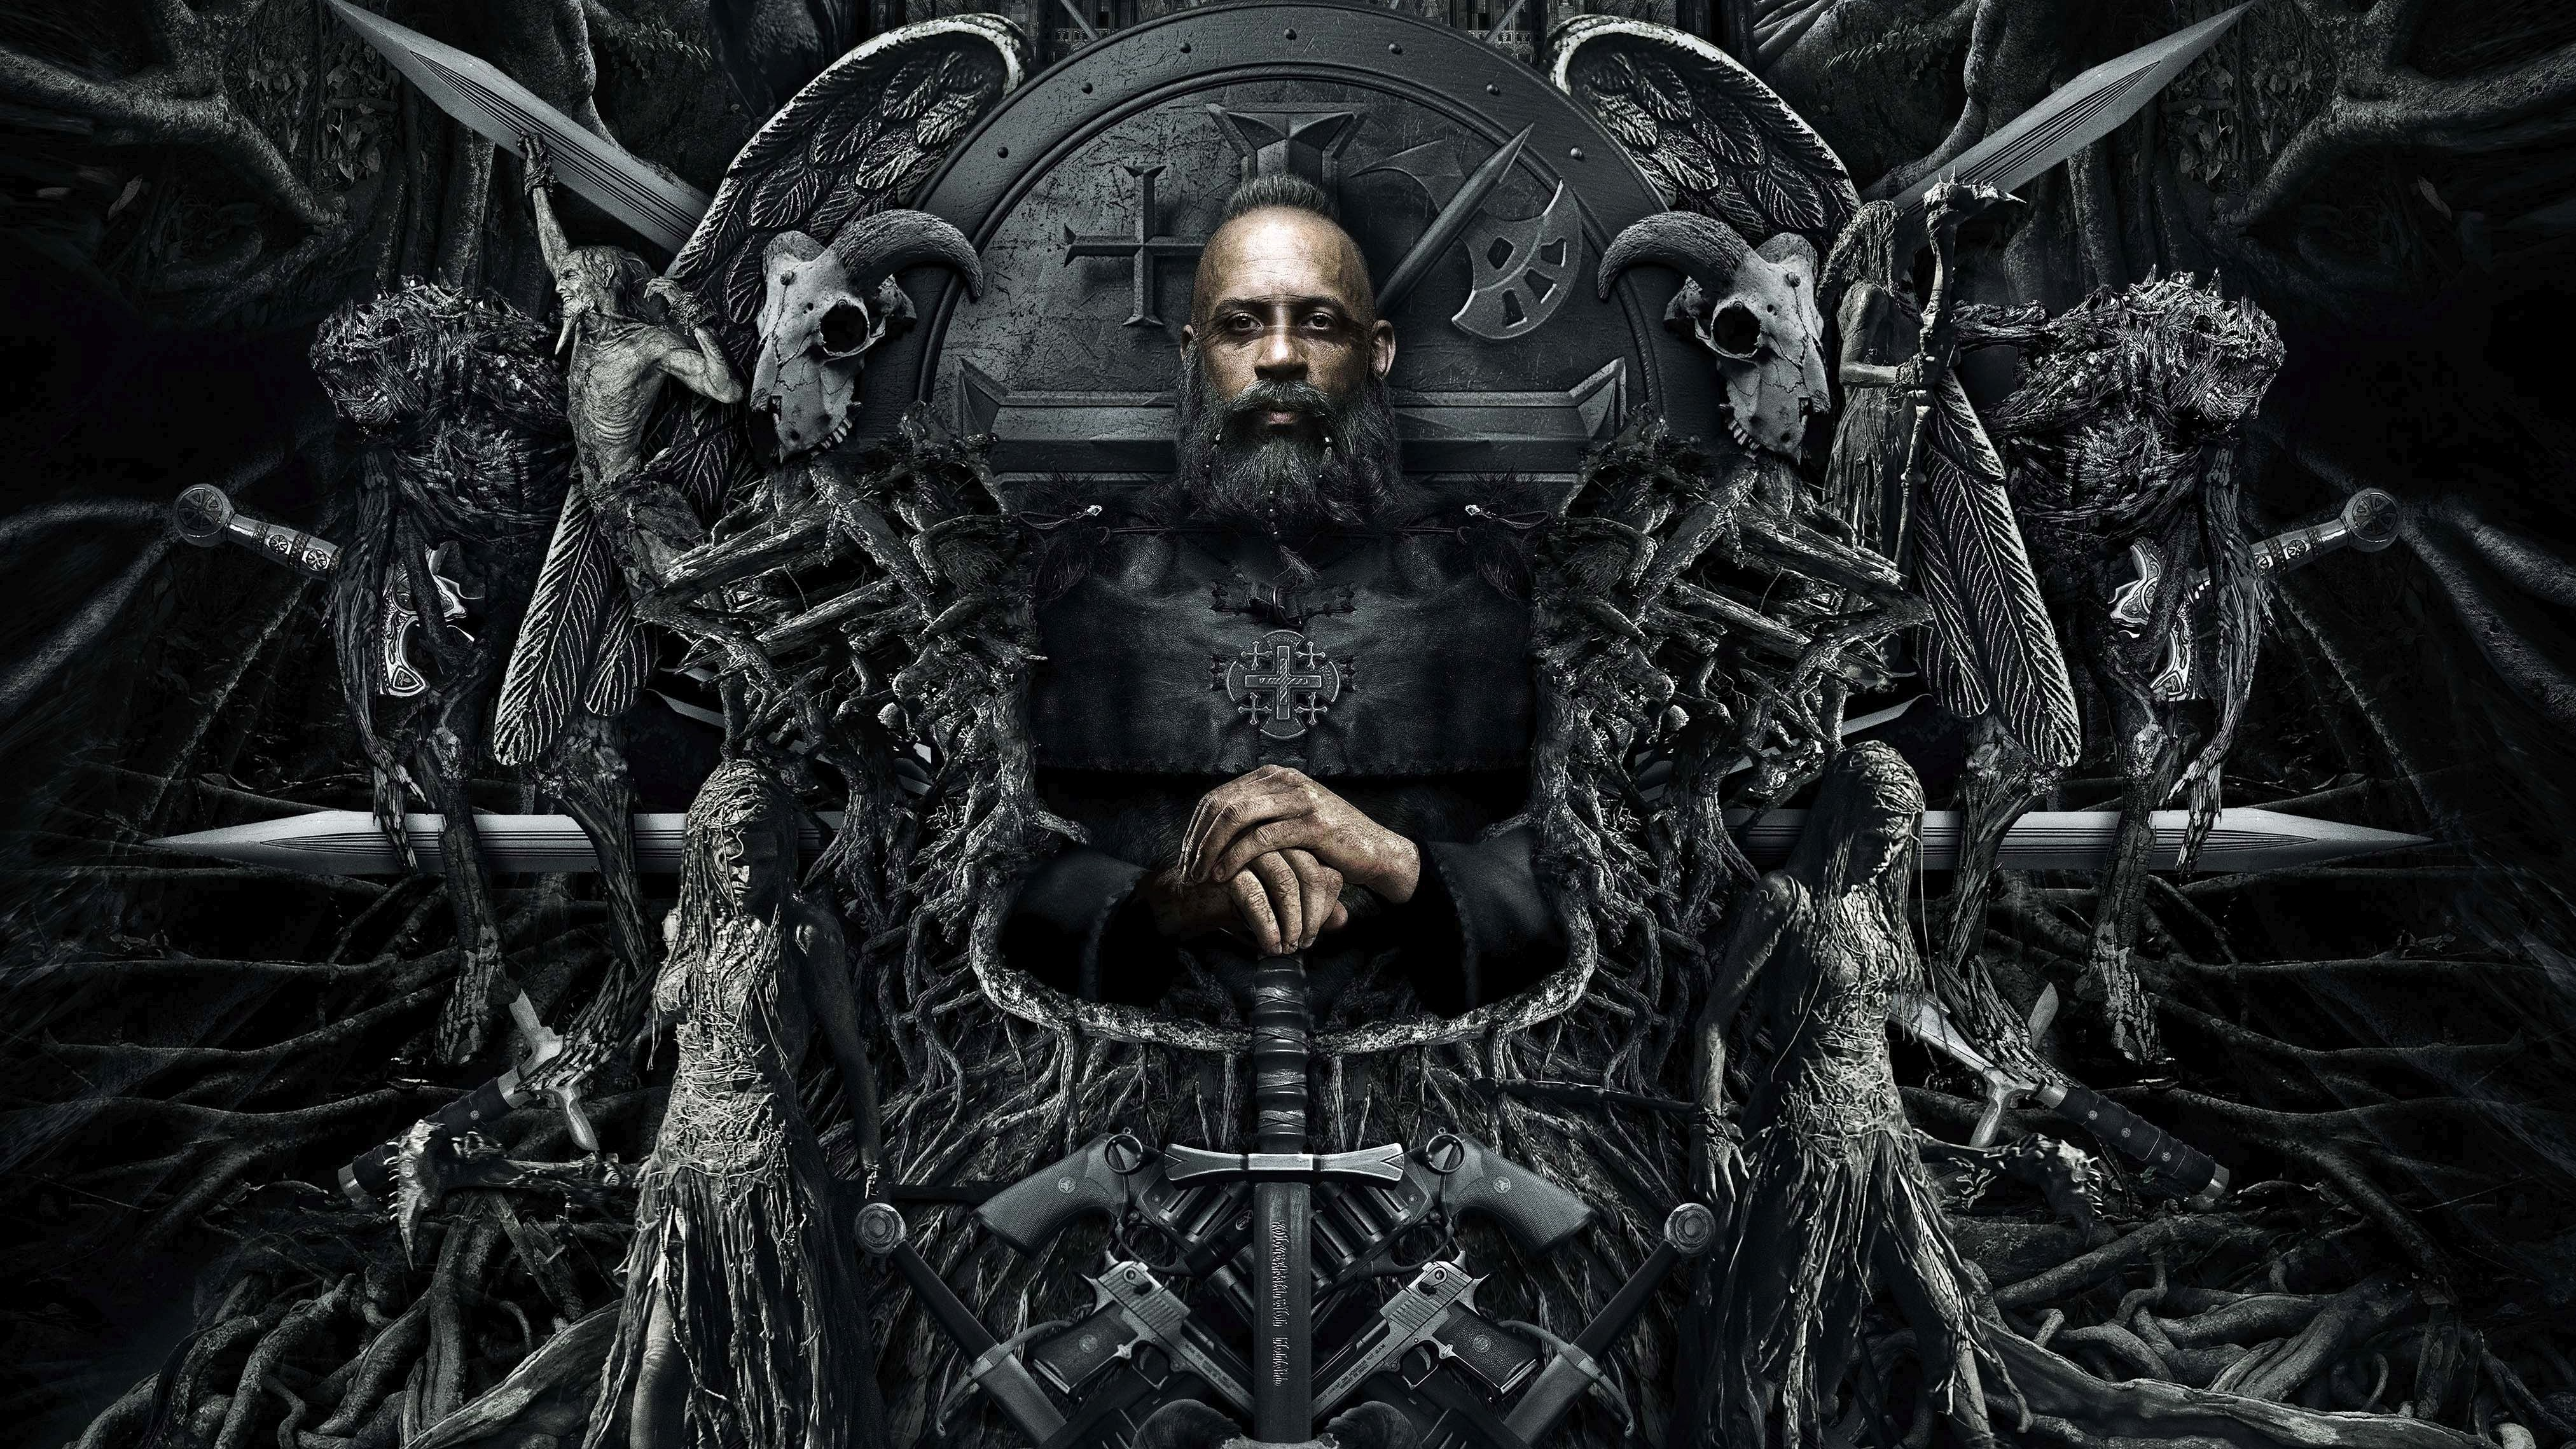 The Last Witch Hunter Wallpapers Wallpaper Cave